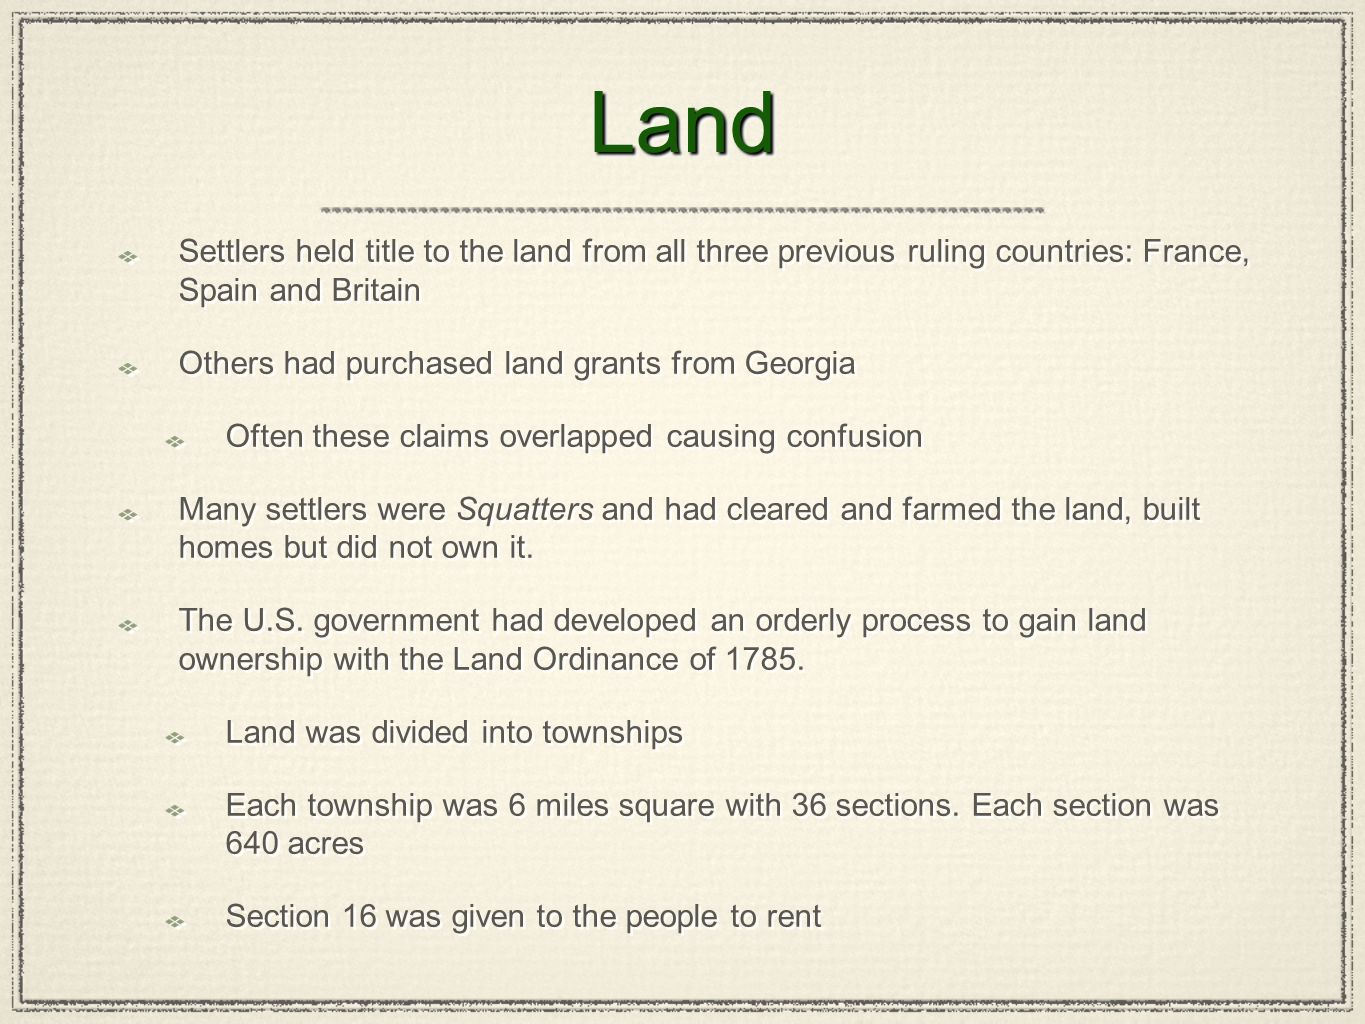 LandLand Settlers held title to the land from all three previous ruling countries: France, Spain and Britain Others had purchased land grants from Geo